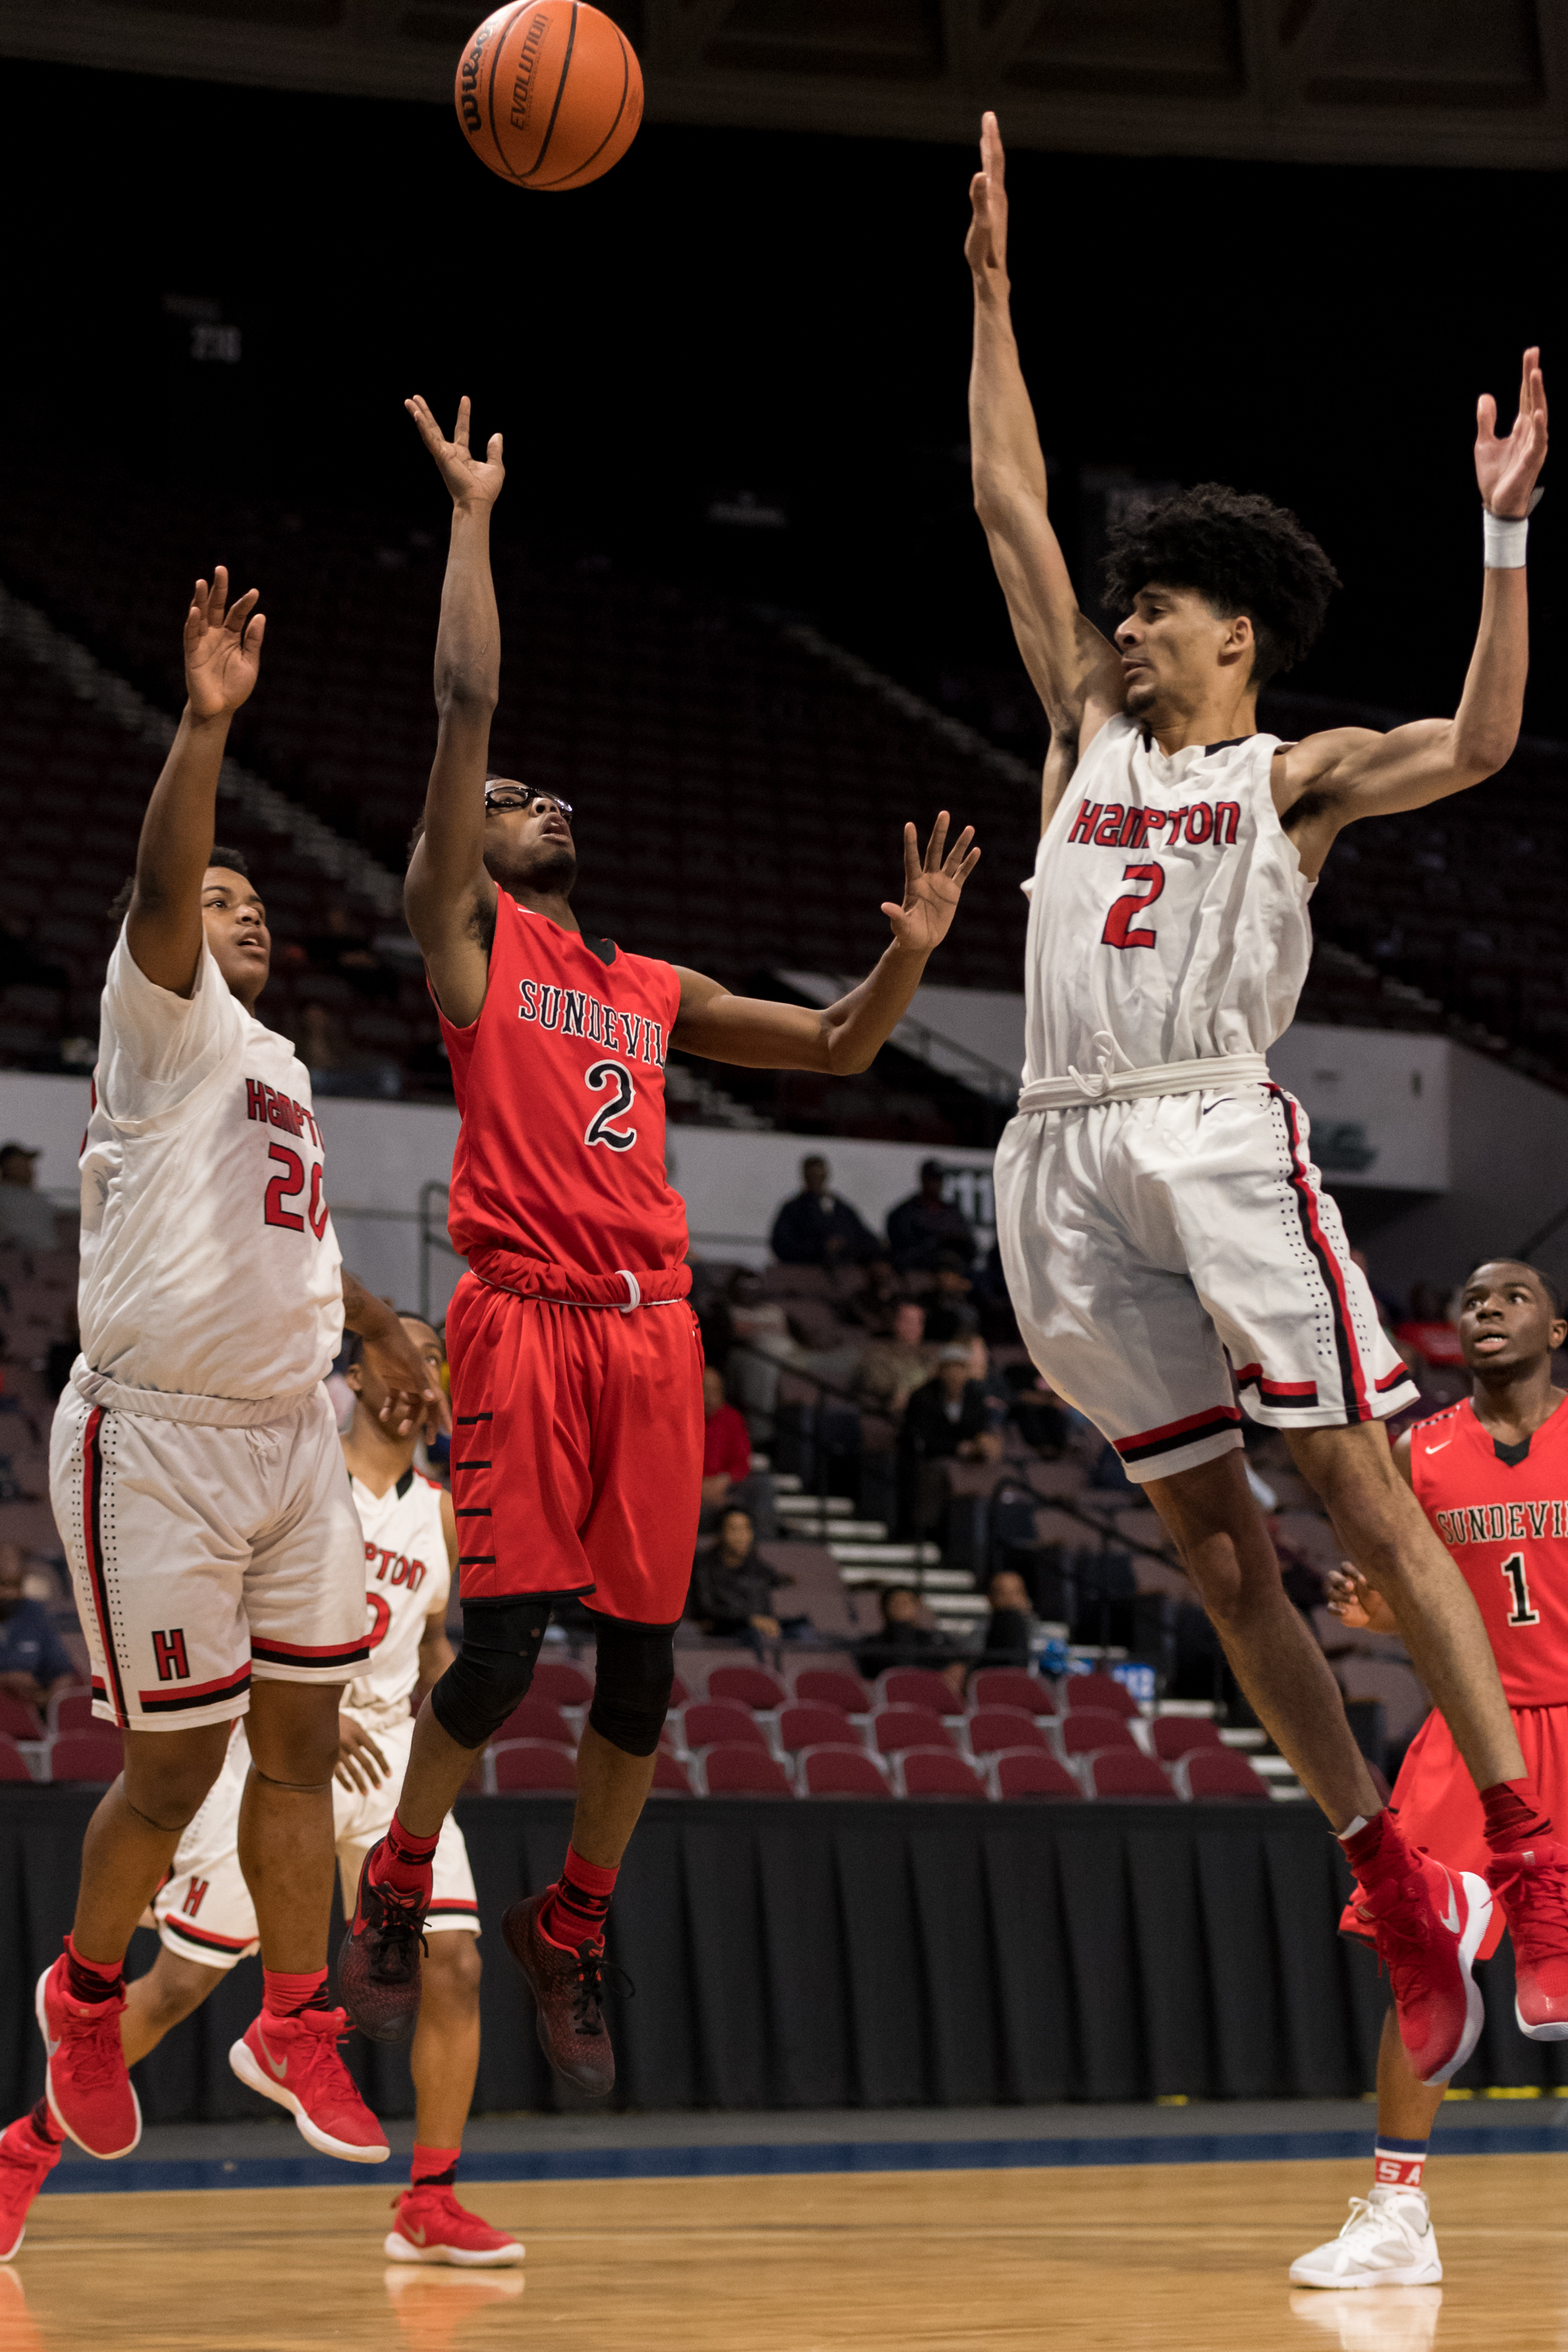 Salem guard Kymon Tyson takes a shot against Hampton forward Jacquez Yow and guard Khairig Grogins during the Region 5A Championship game held Monday, February 26, 2018 at the Norfolk Scope. Salem leads Hampton 30 to 26 at half time.